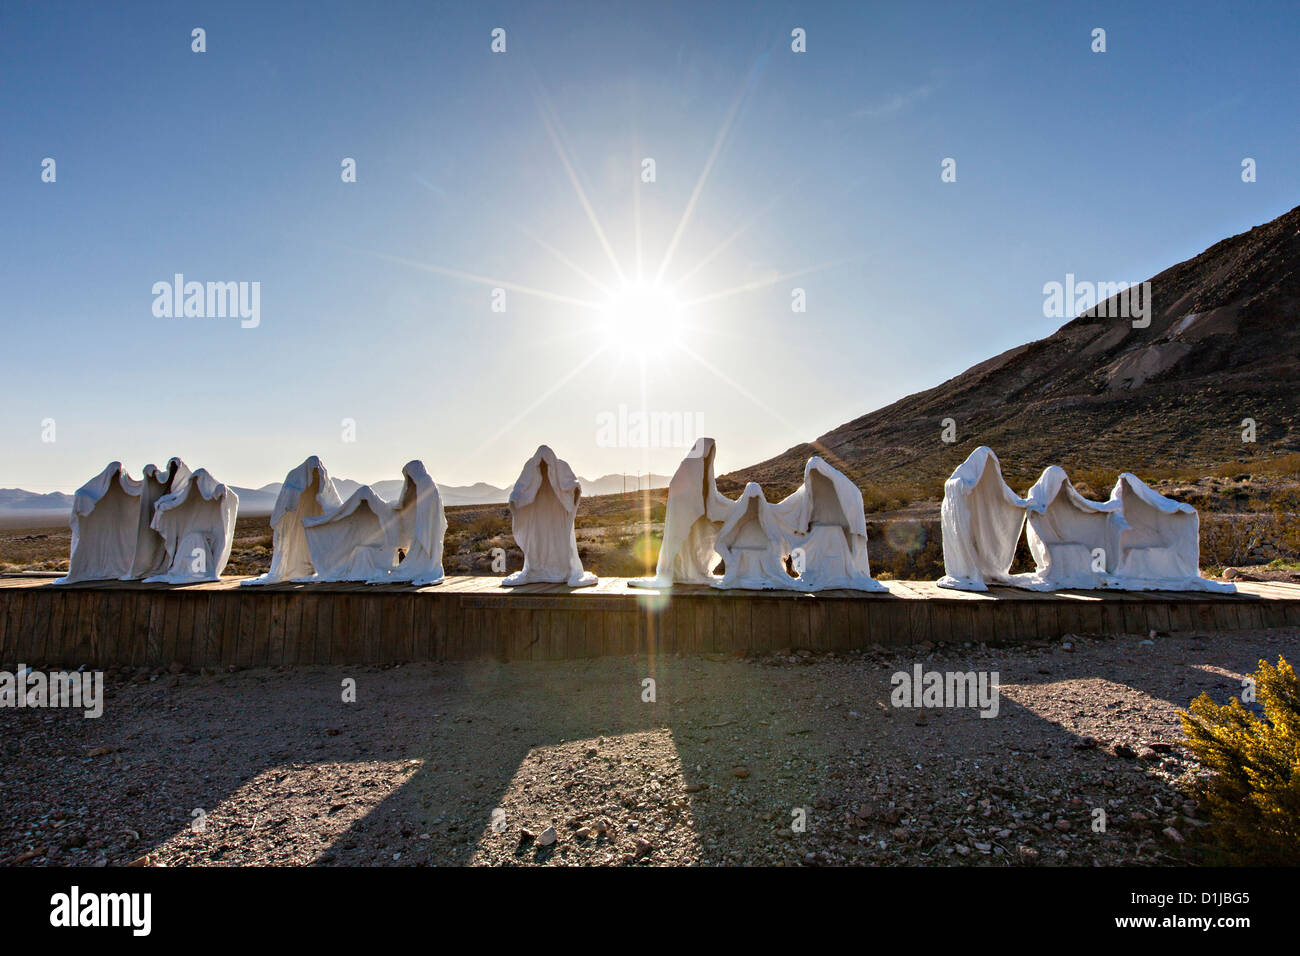 Public sculpture called The Last Supper at the open air museum in Goldwell, NV. - Stock Image